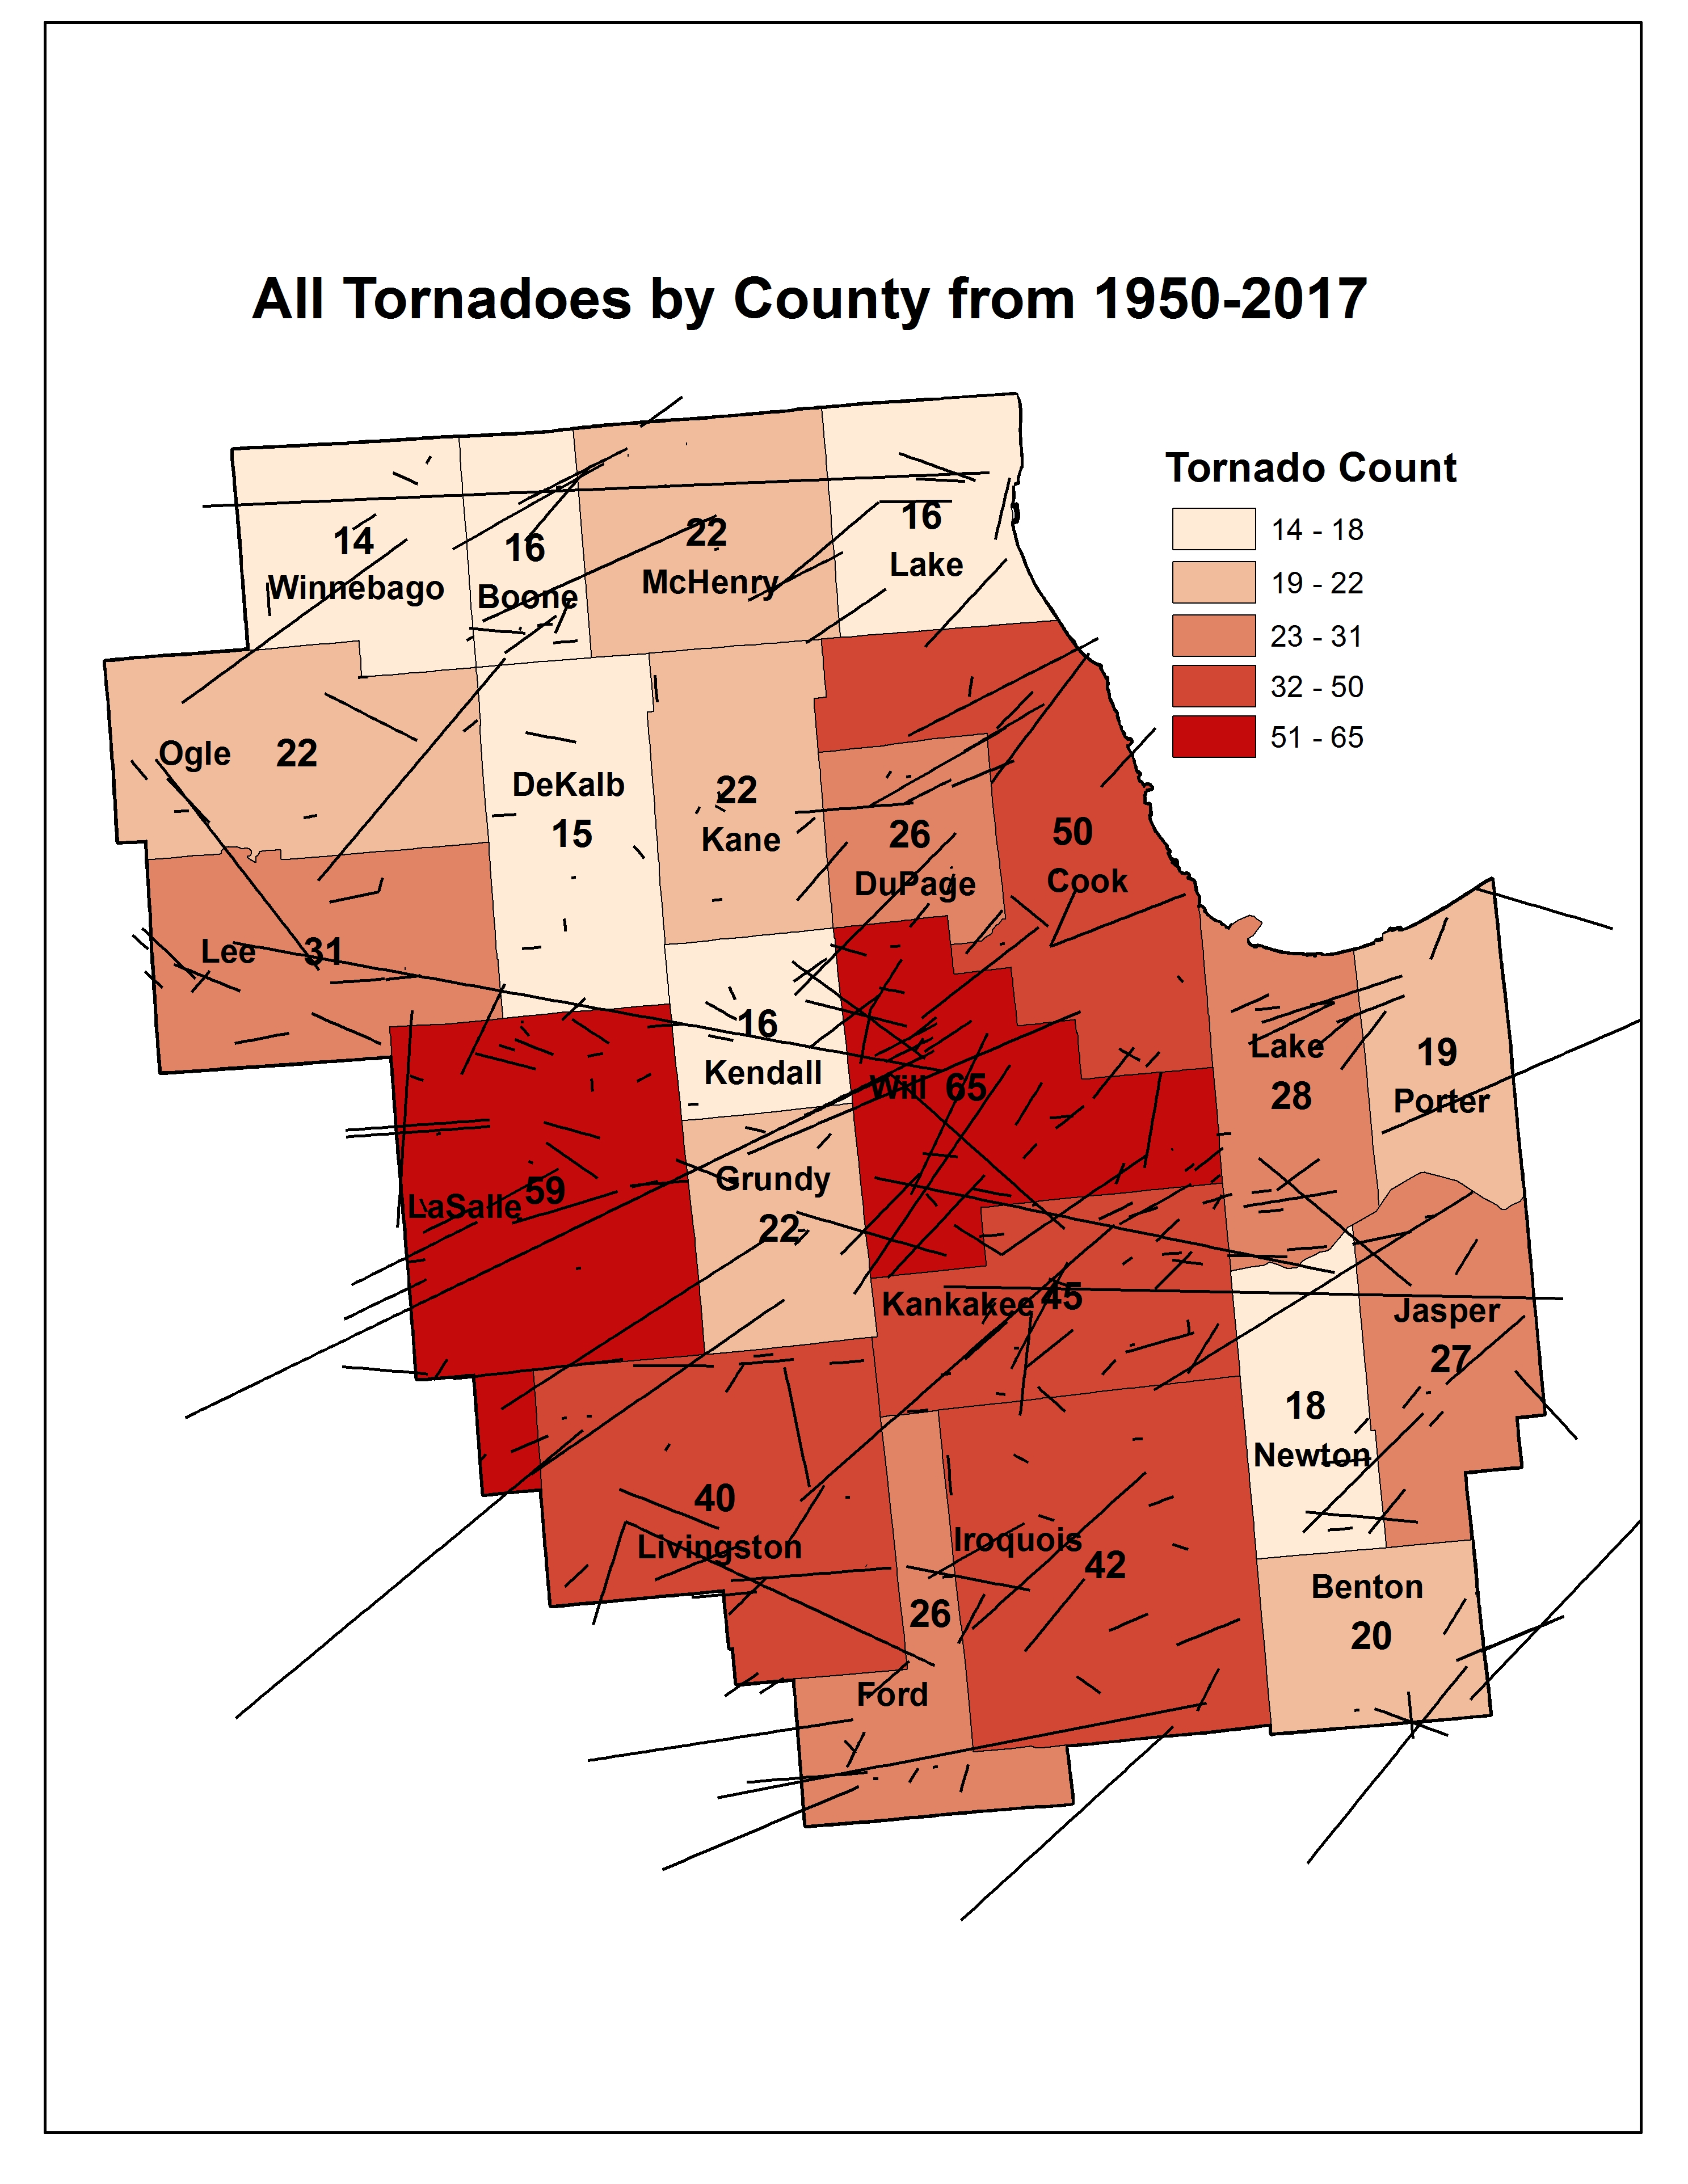 Tornado Counts by County